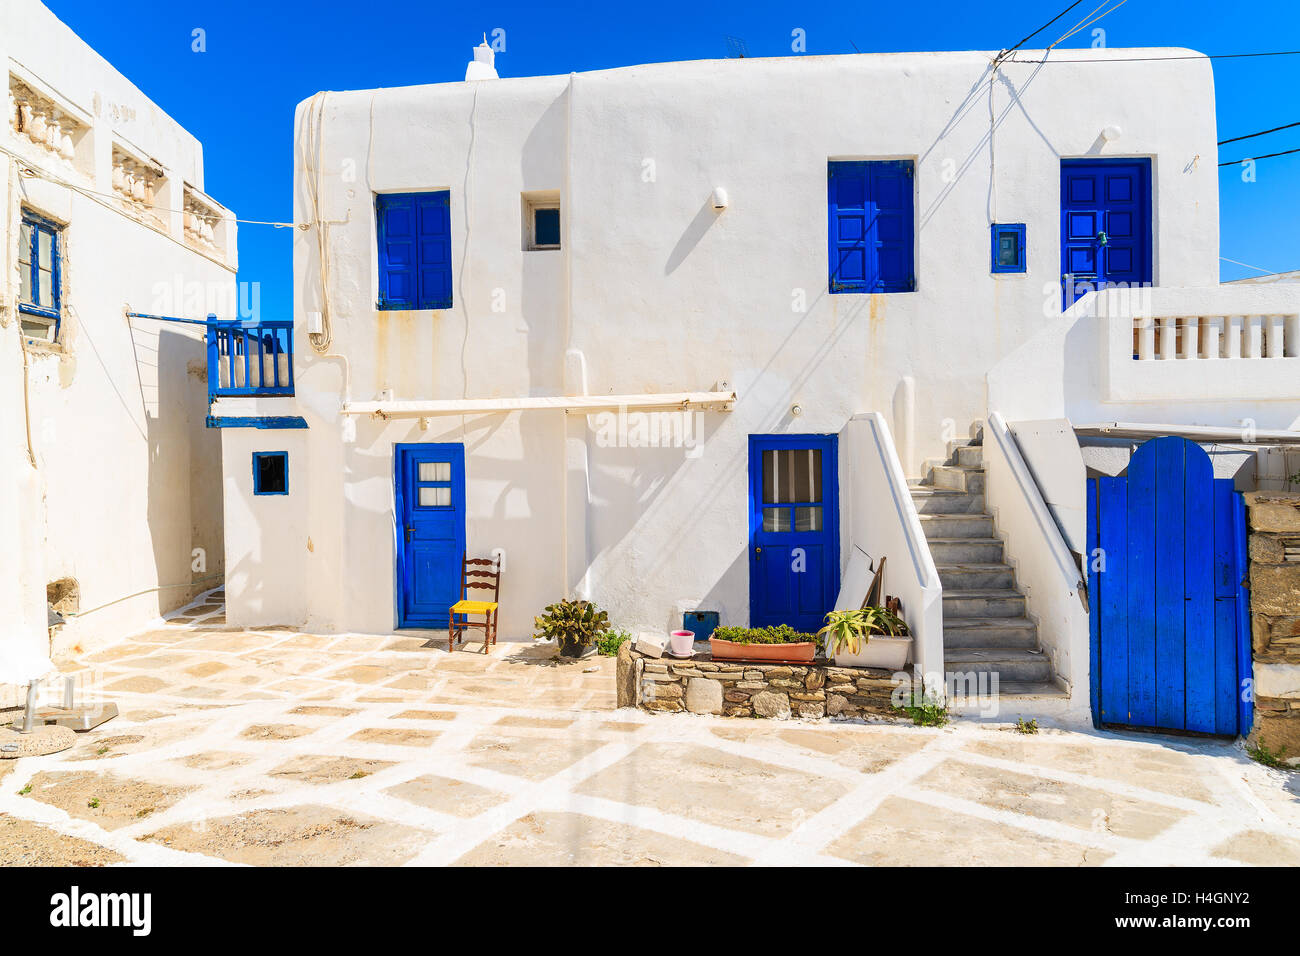 Typical Greek House Blue Windows And Doors On Whitewashed